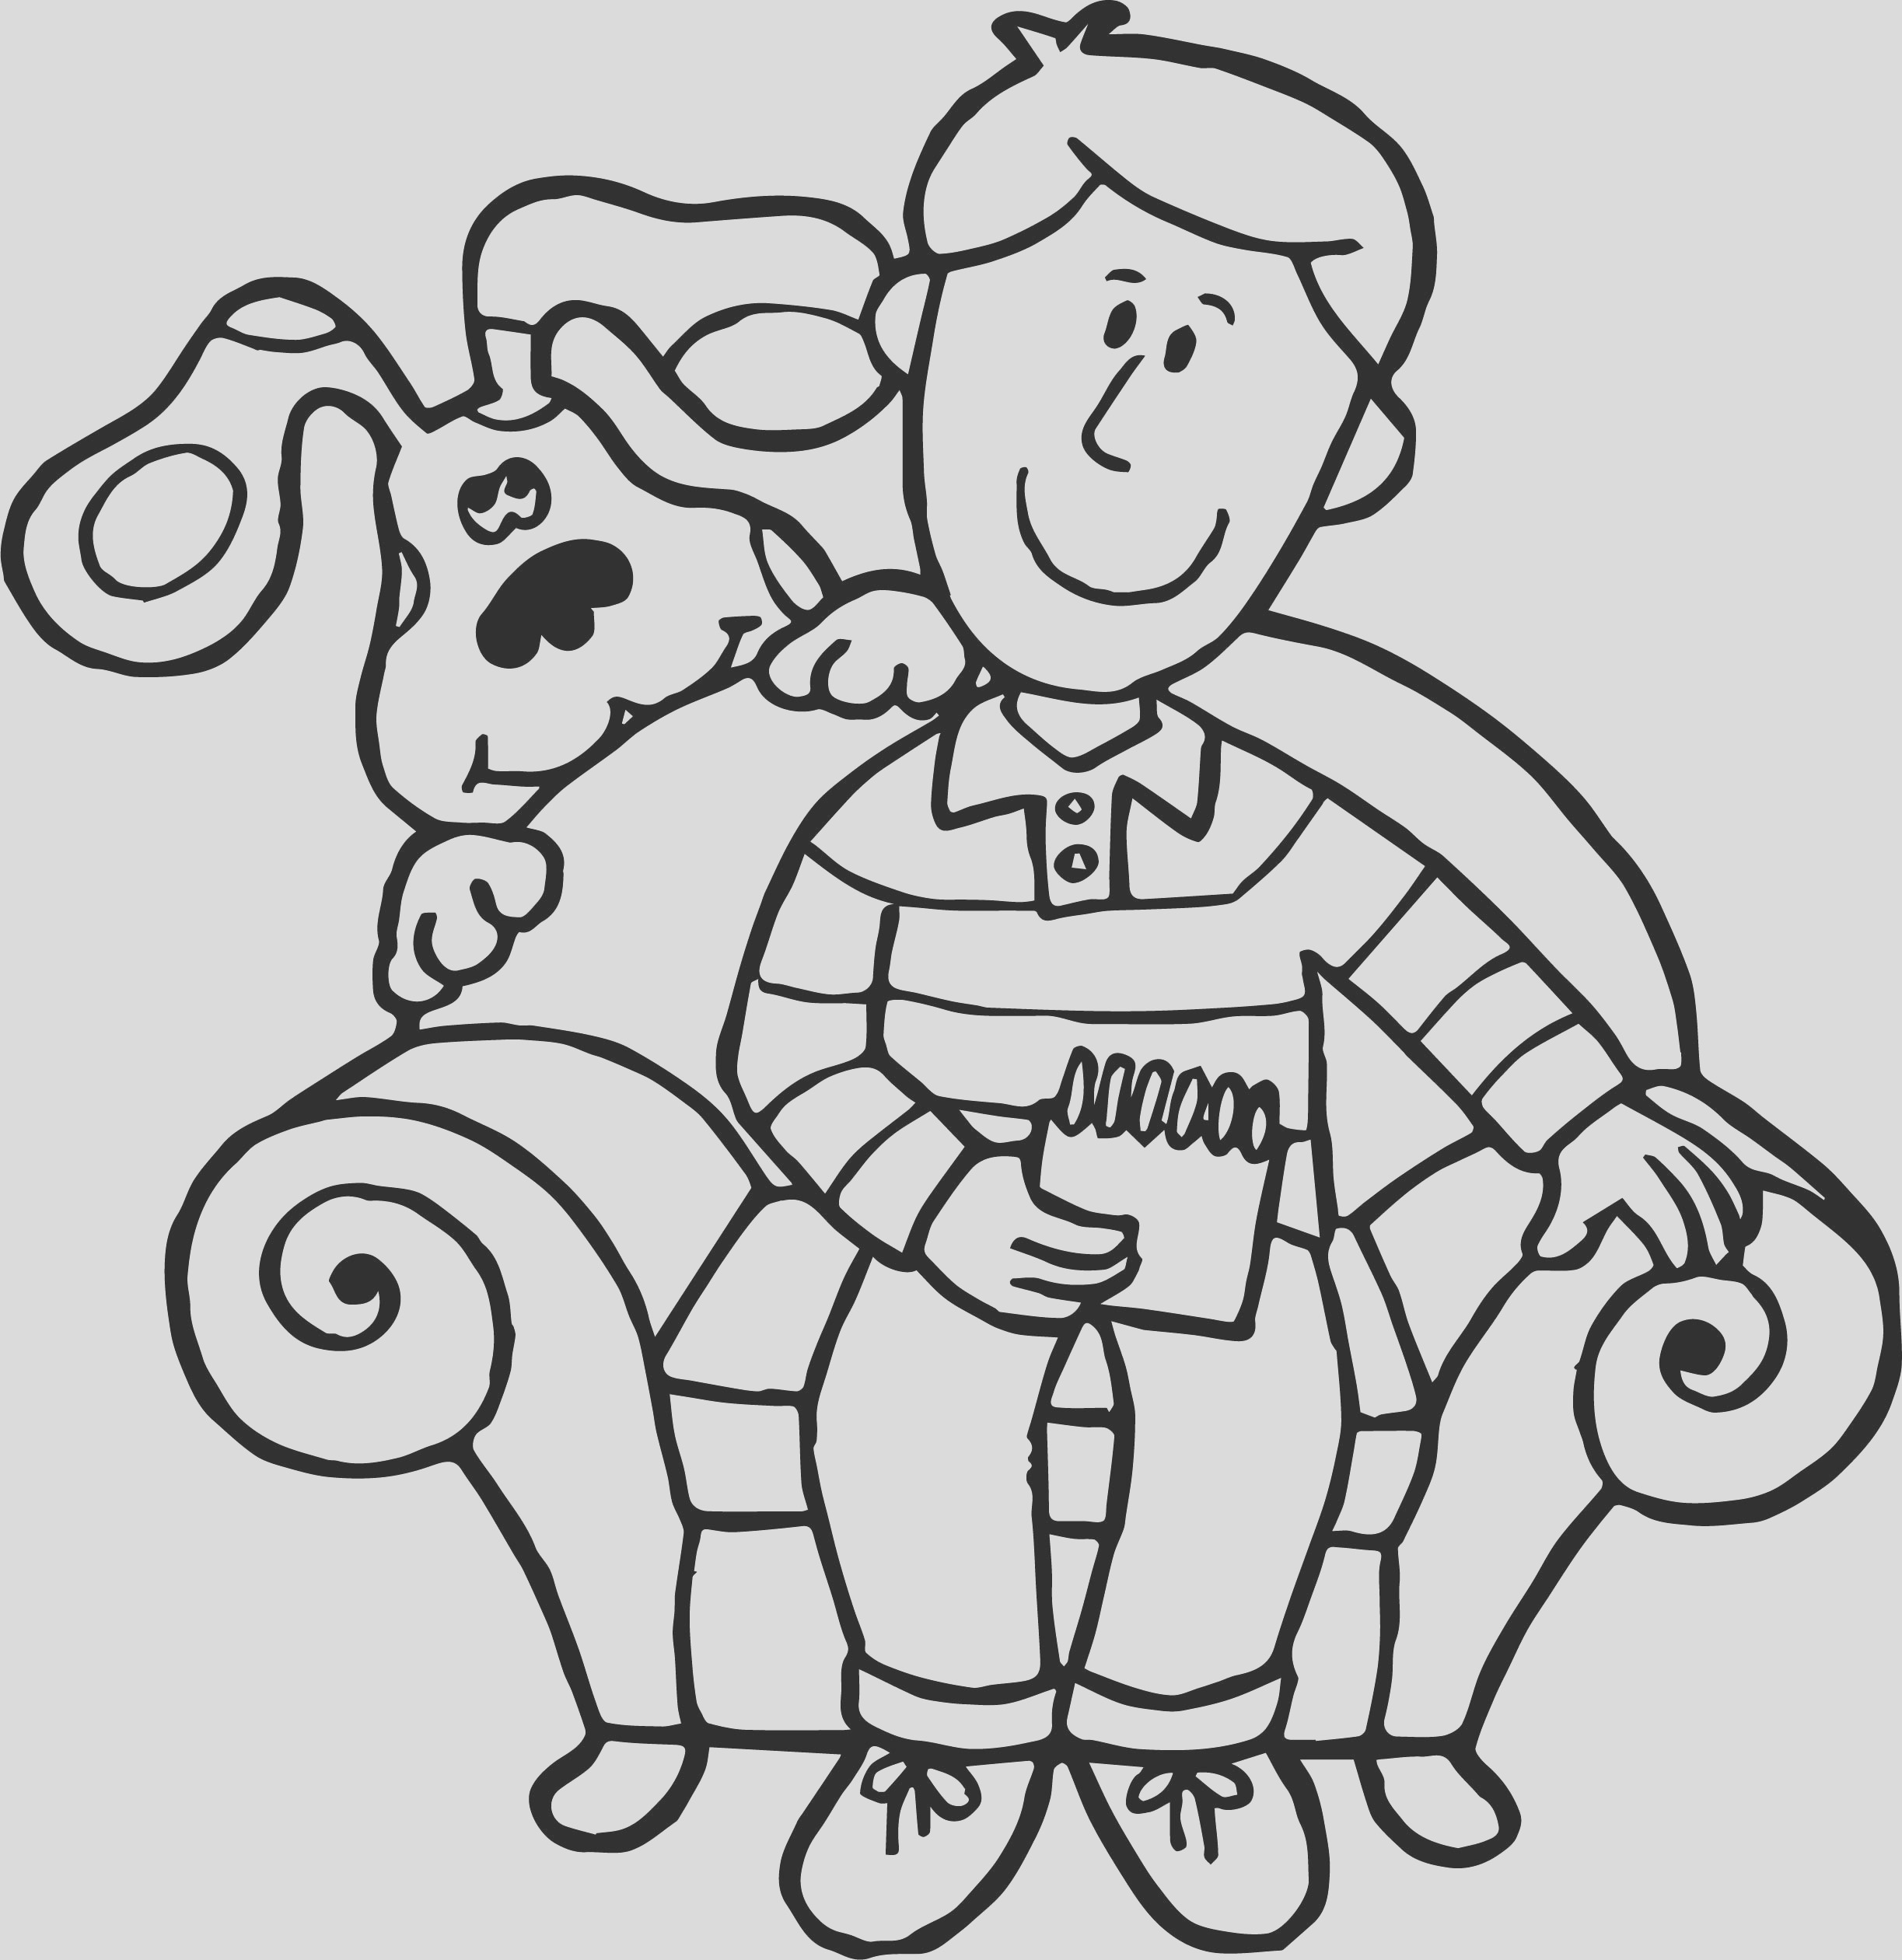 blues clues man coloring page